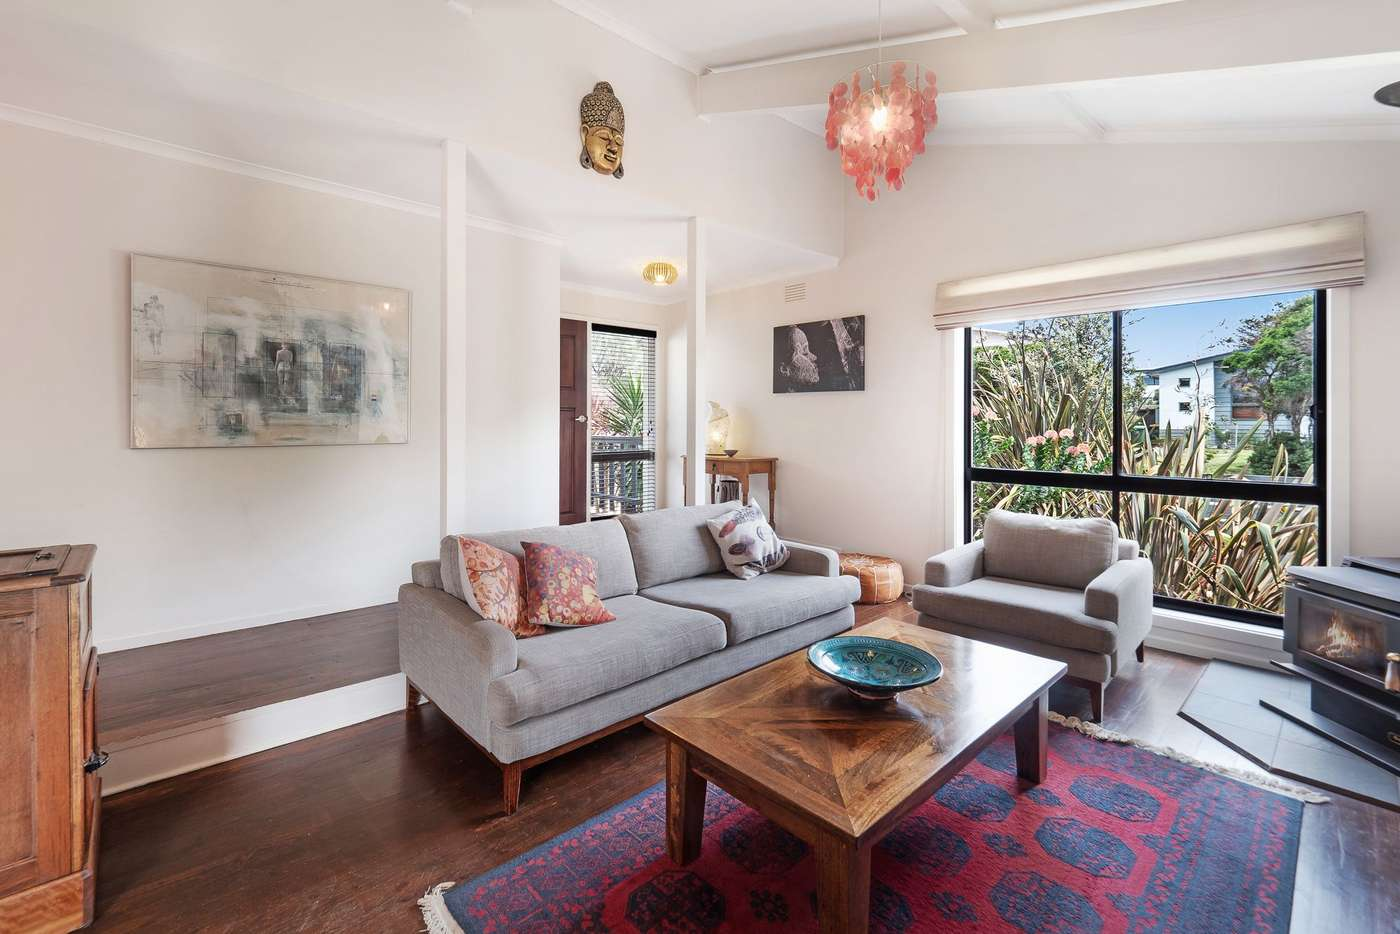 Sixth view of Homely house listing, 8 Dixon Street, Surf Beach VIC 3922